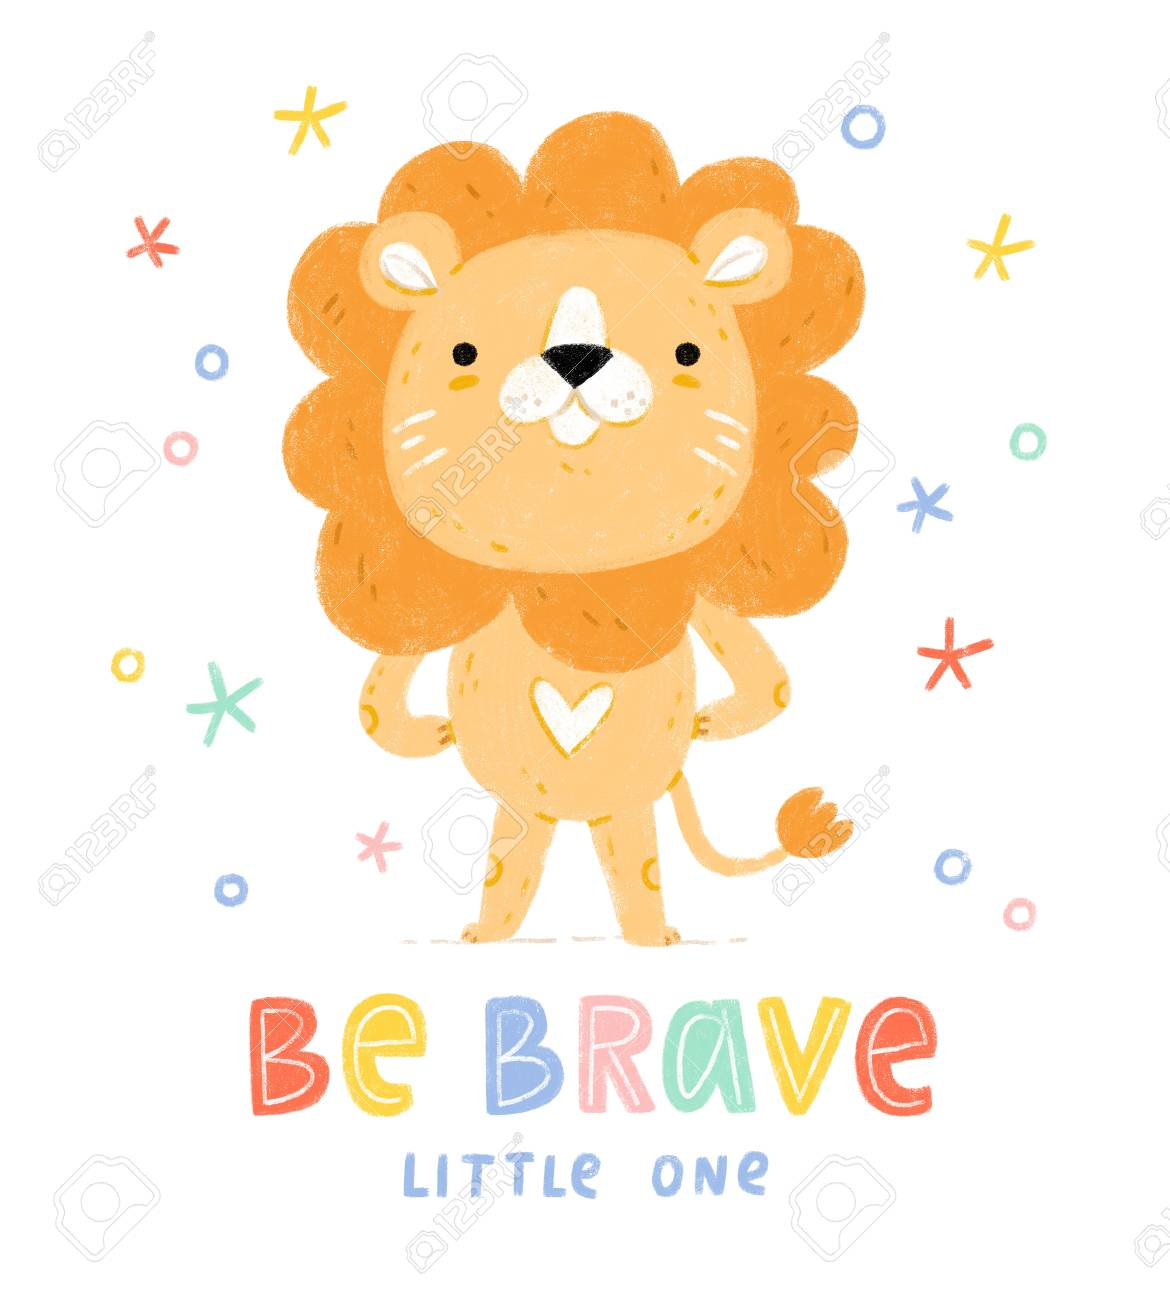 39+ Be Brave Little One Teepee Design